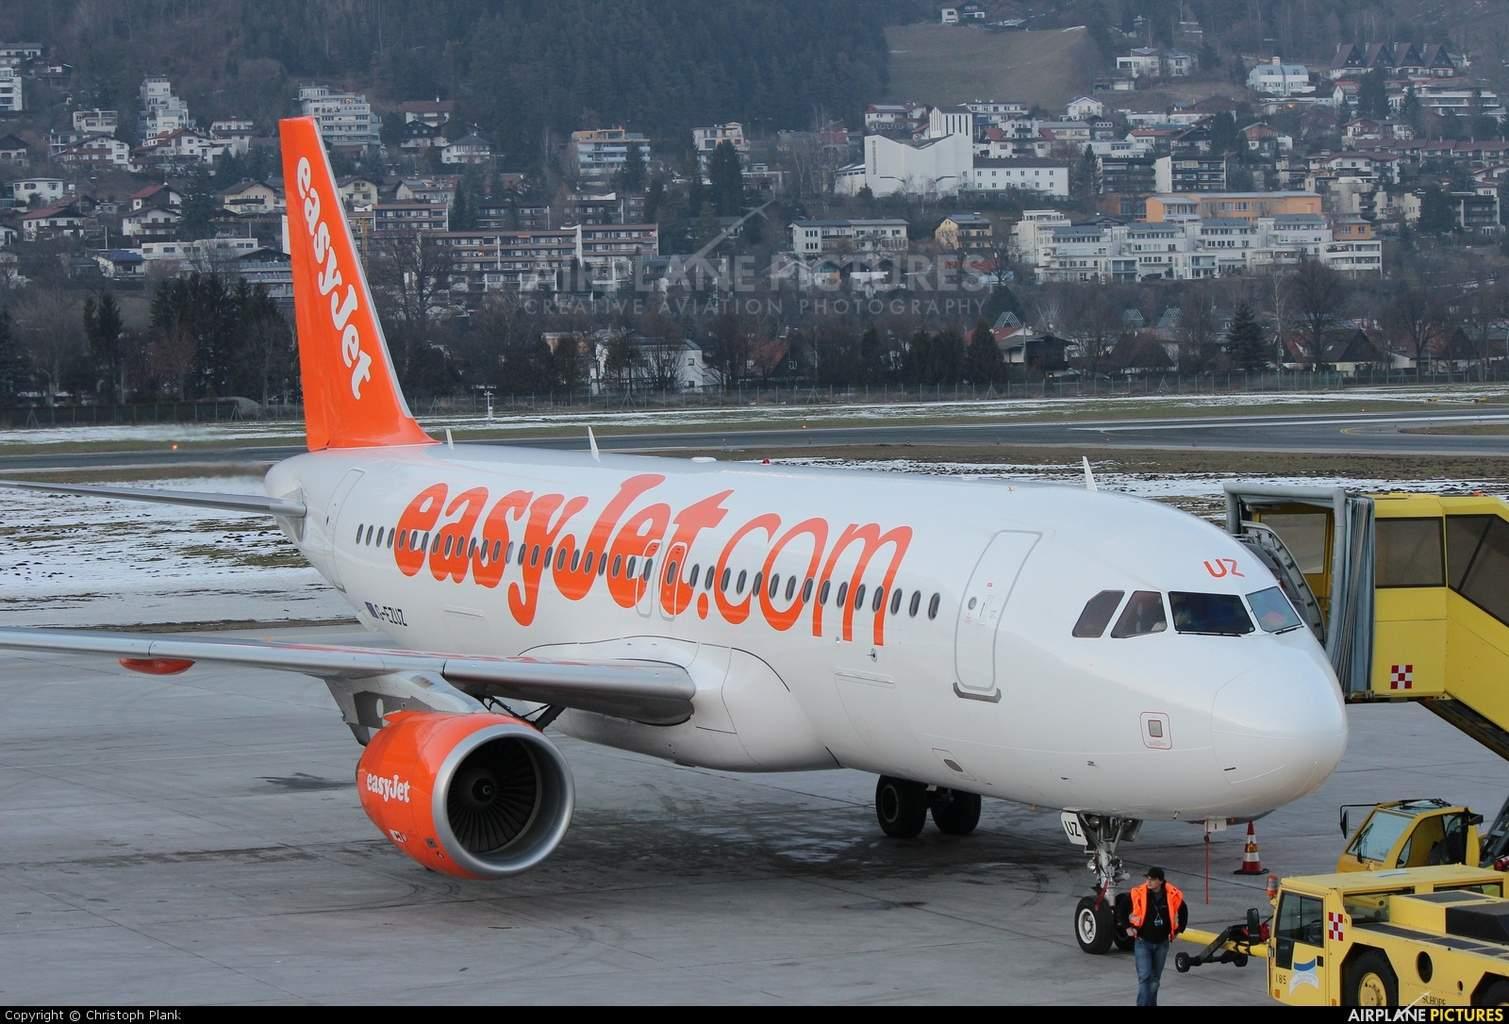 Muslim passengers forced off easyJet flight